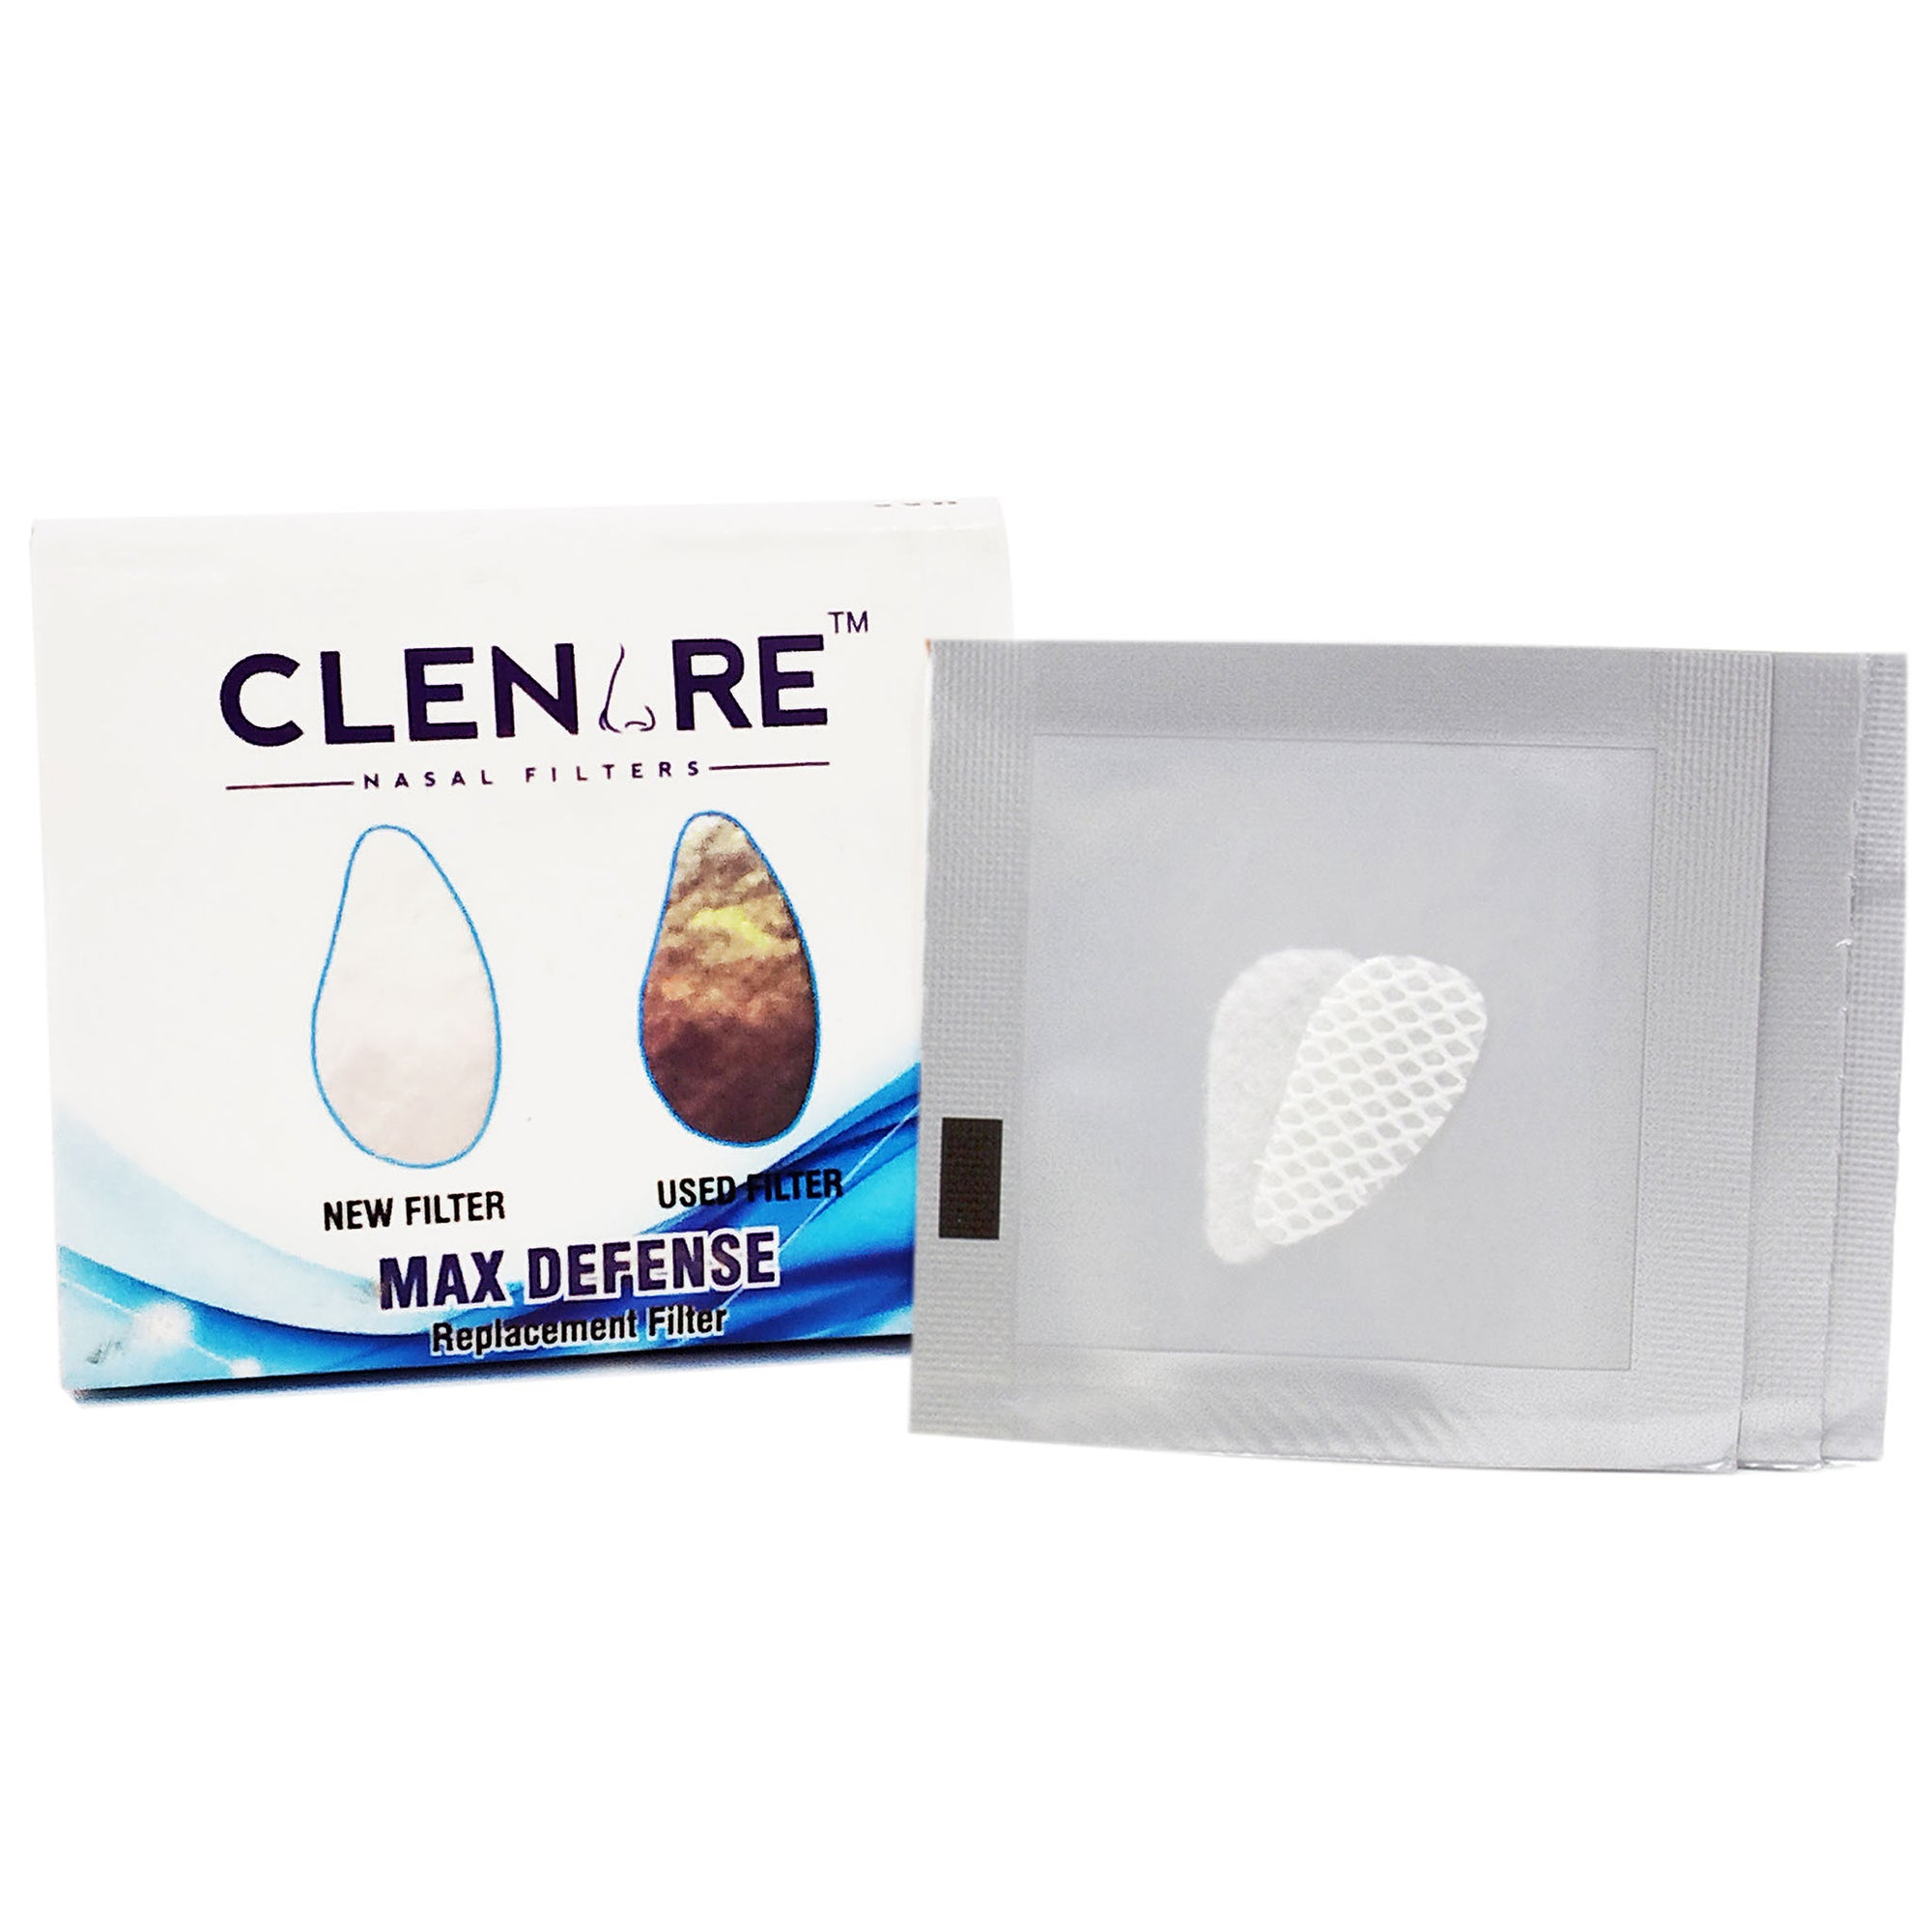 Clenare Replacement Filter - Max Defense